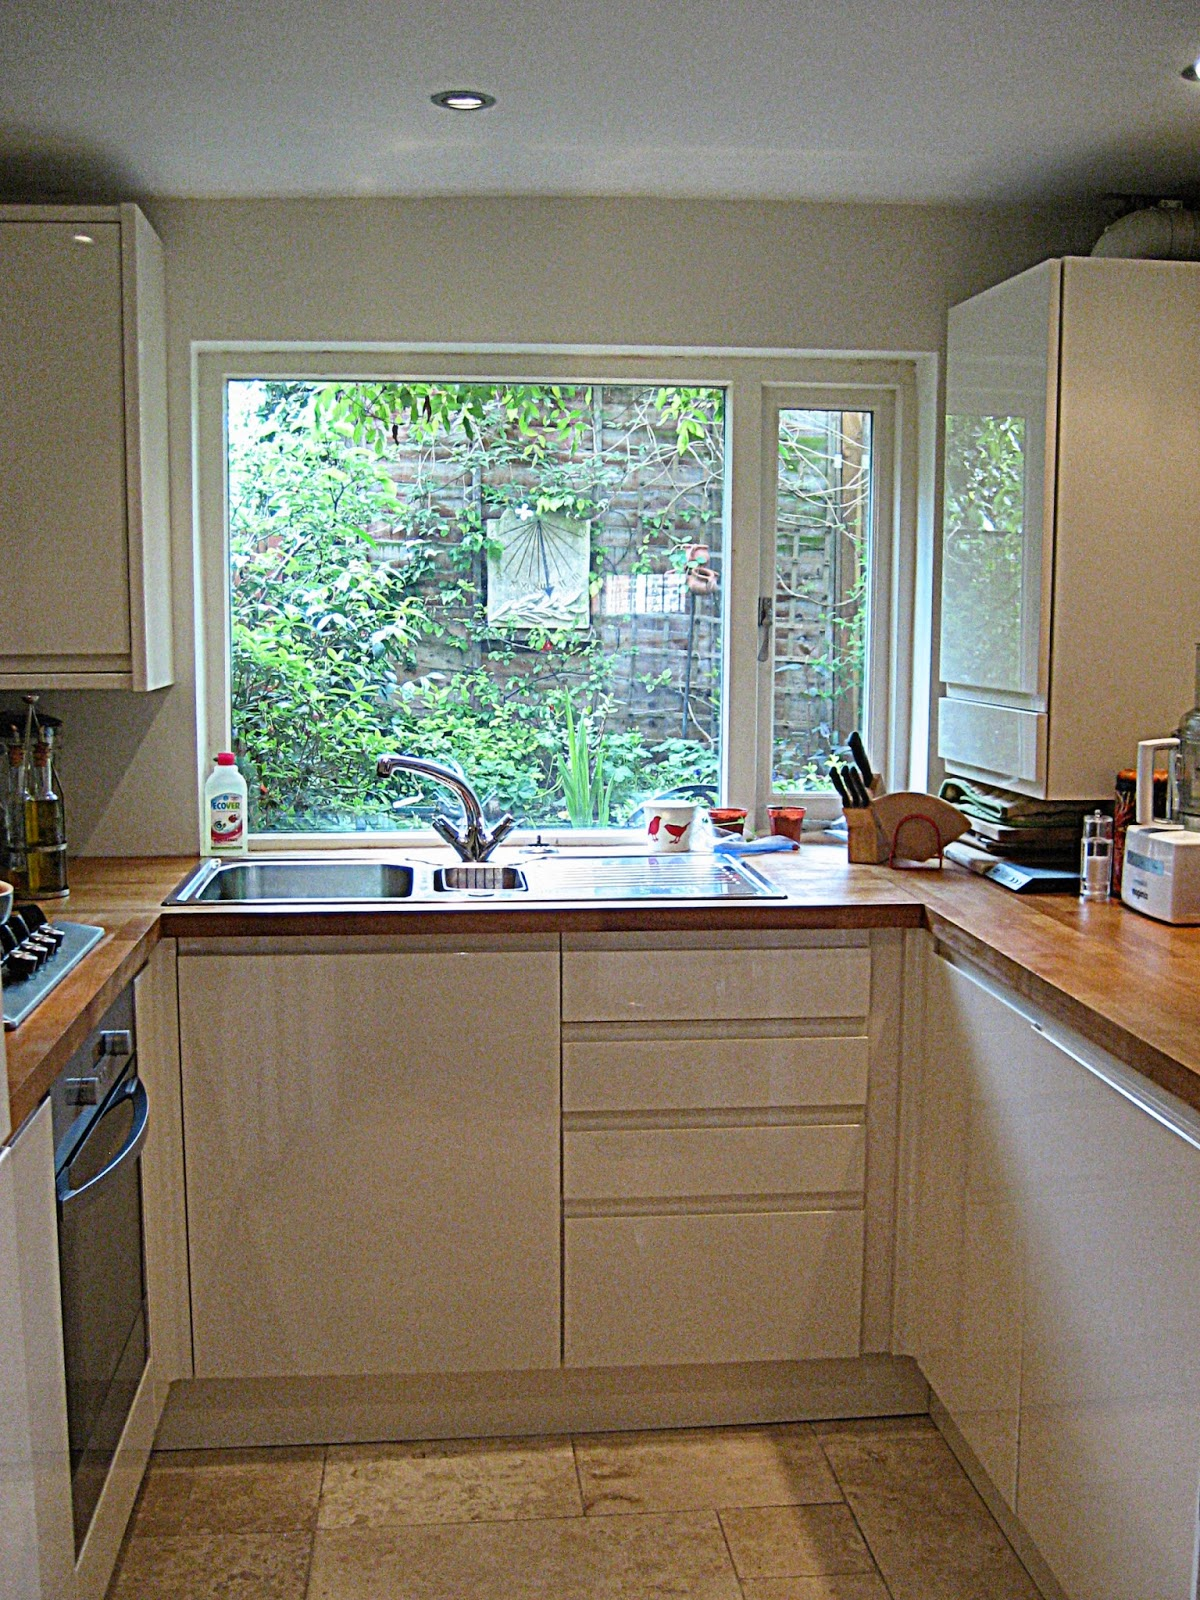 Pebble soup seven things i learnt about designing a small U shaped kitchen ideas uk